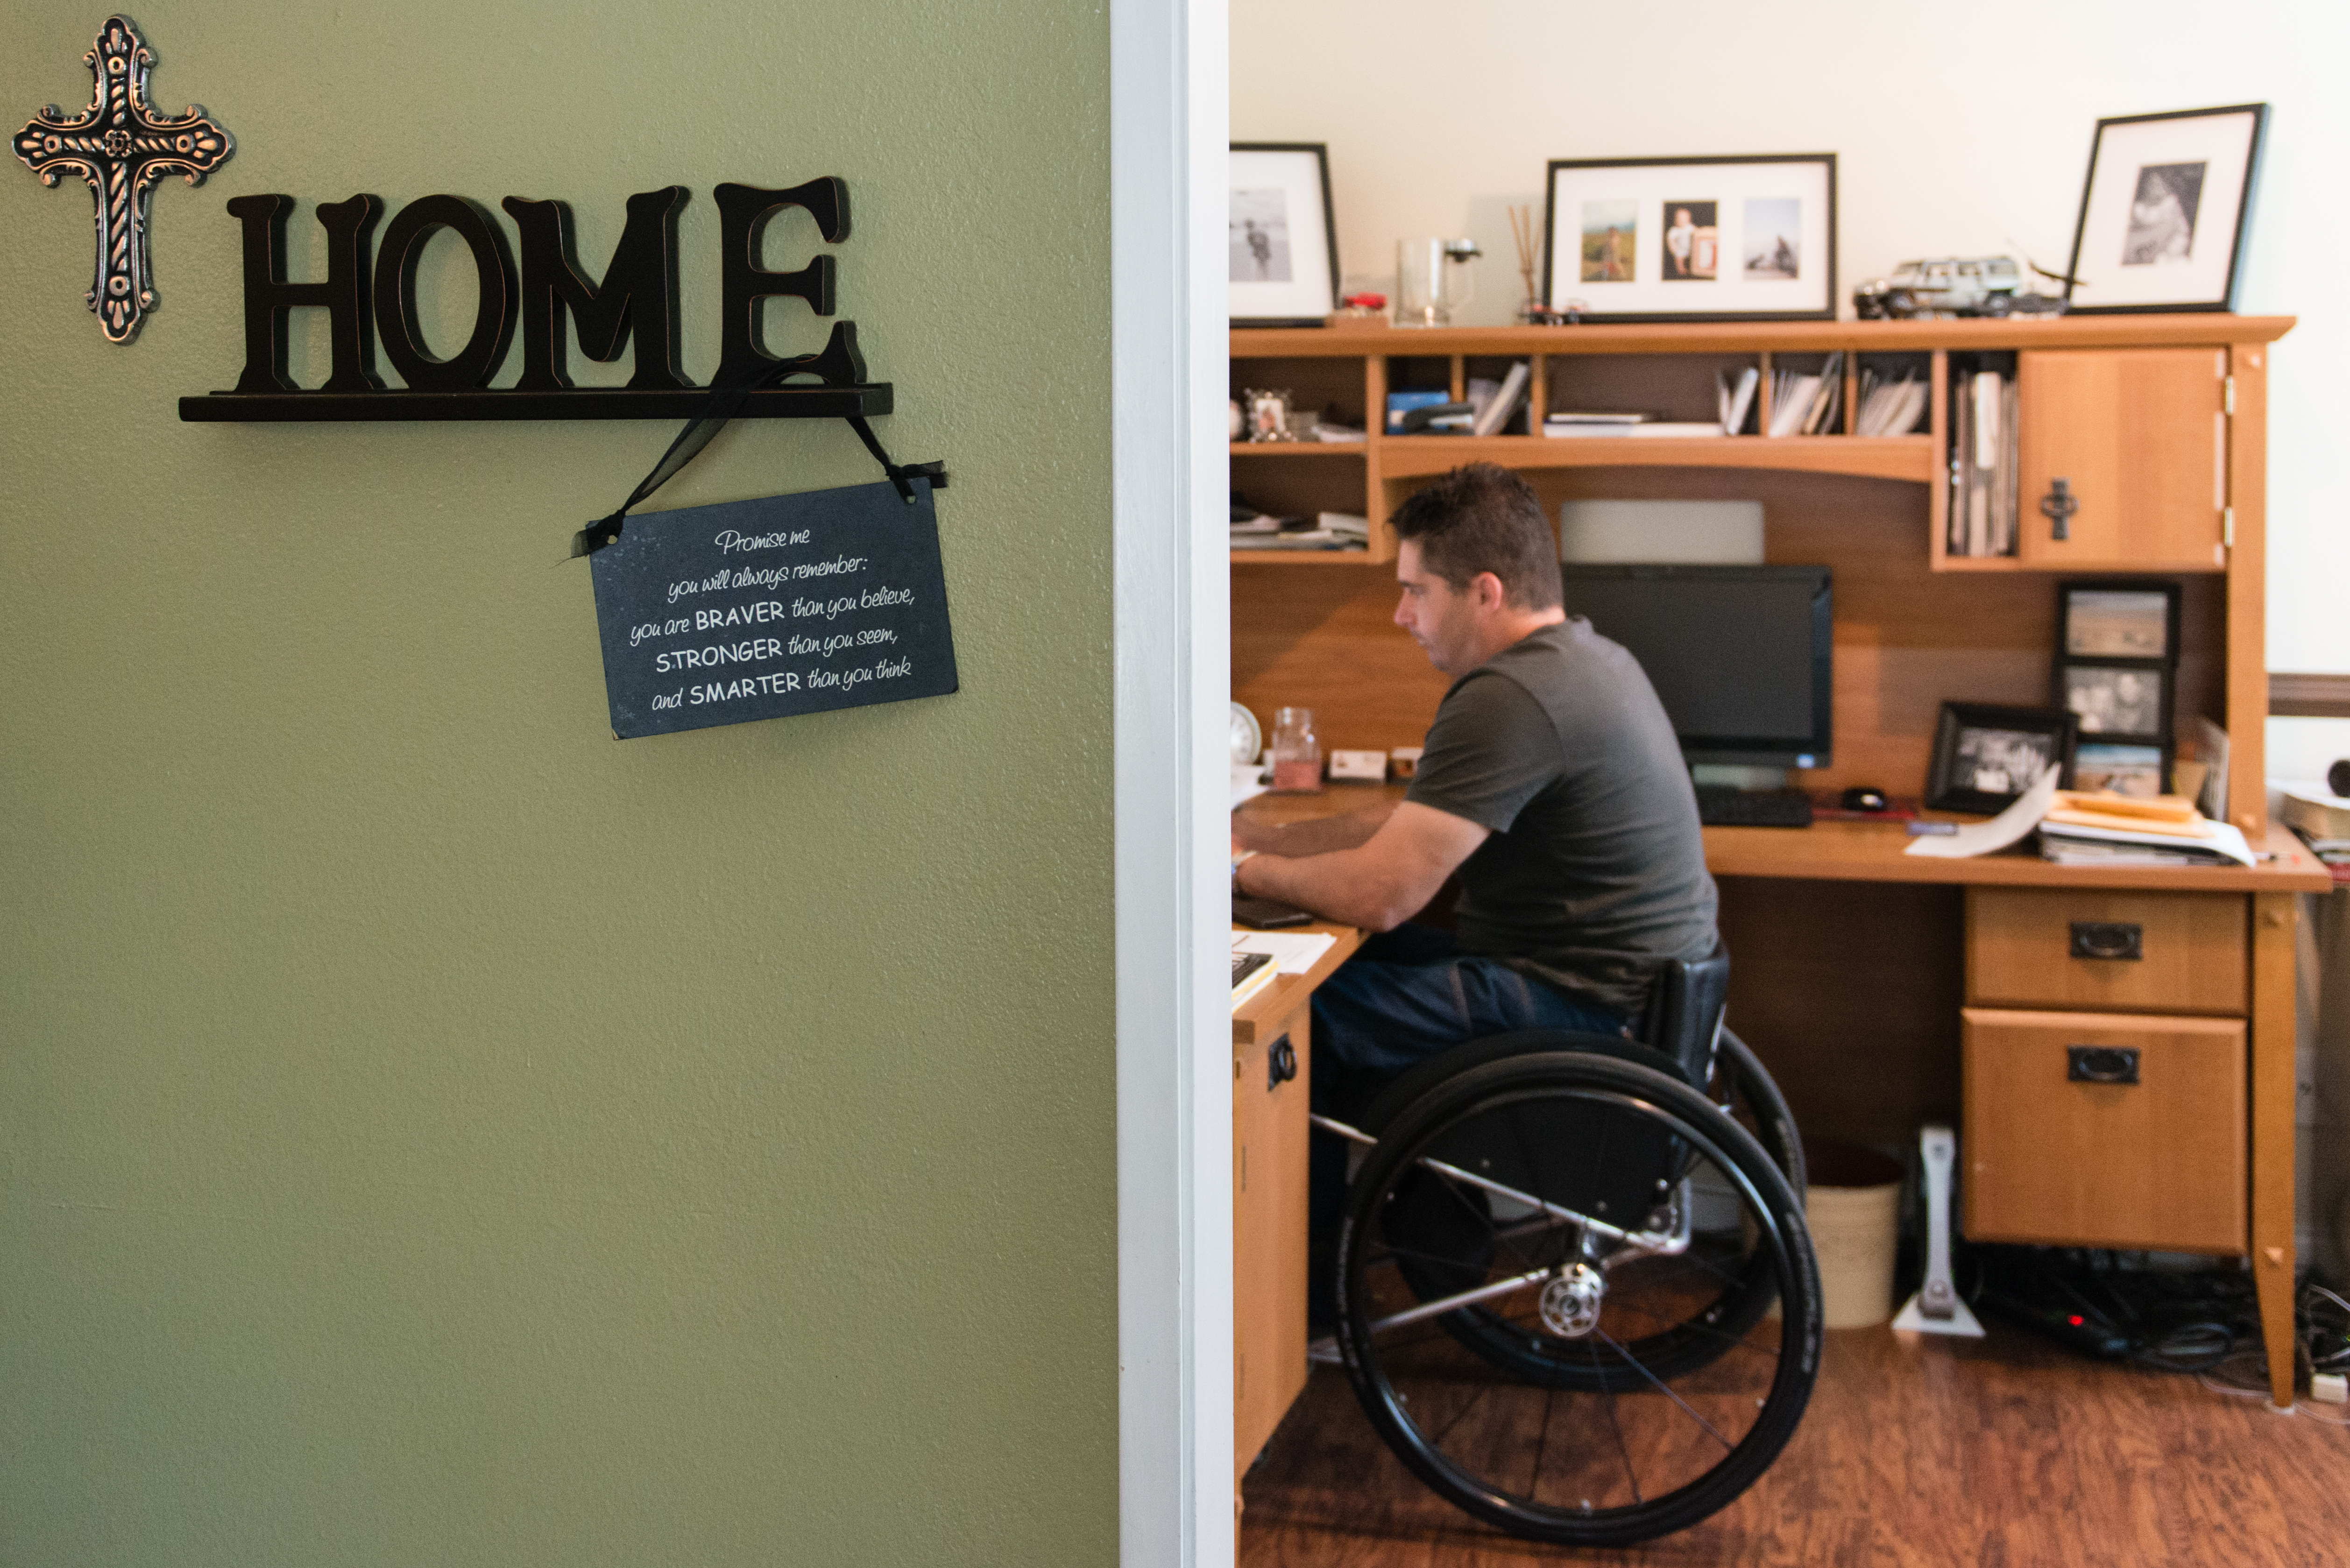 Anthony R. Orefice, 40, owns a medical supply business and works from home. Orefice says his faith helped him get through the initial depression of being paralyzed (Photo by Heidi de Marco/KHN).